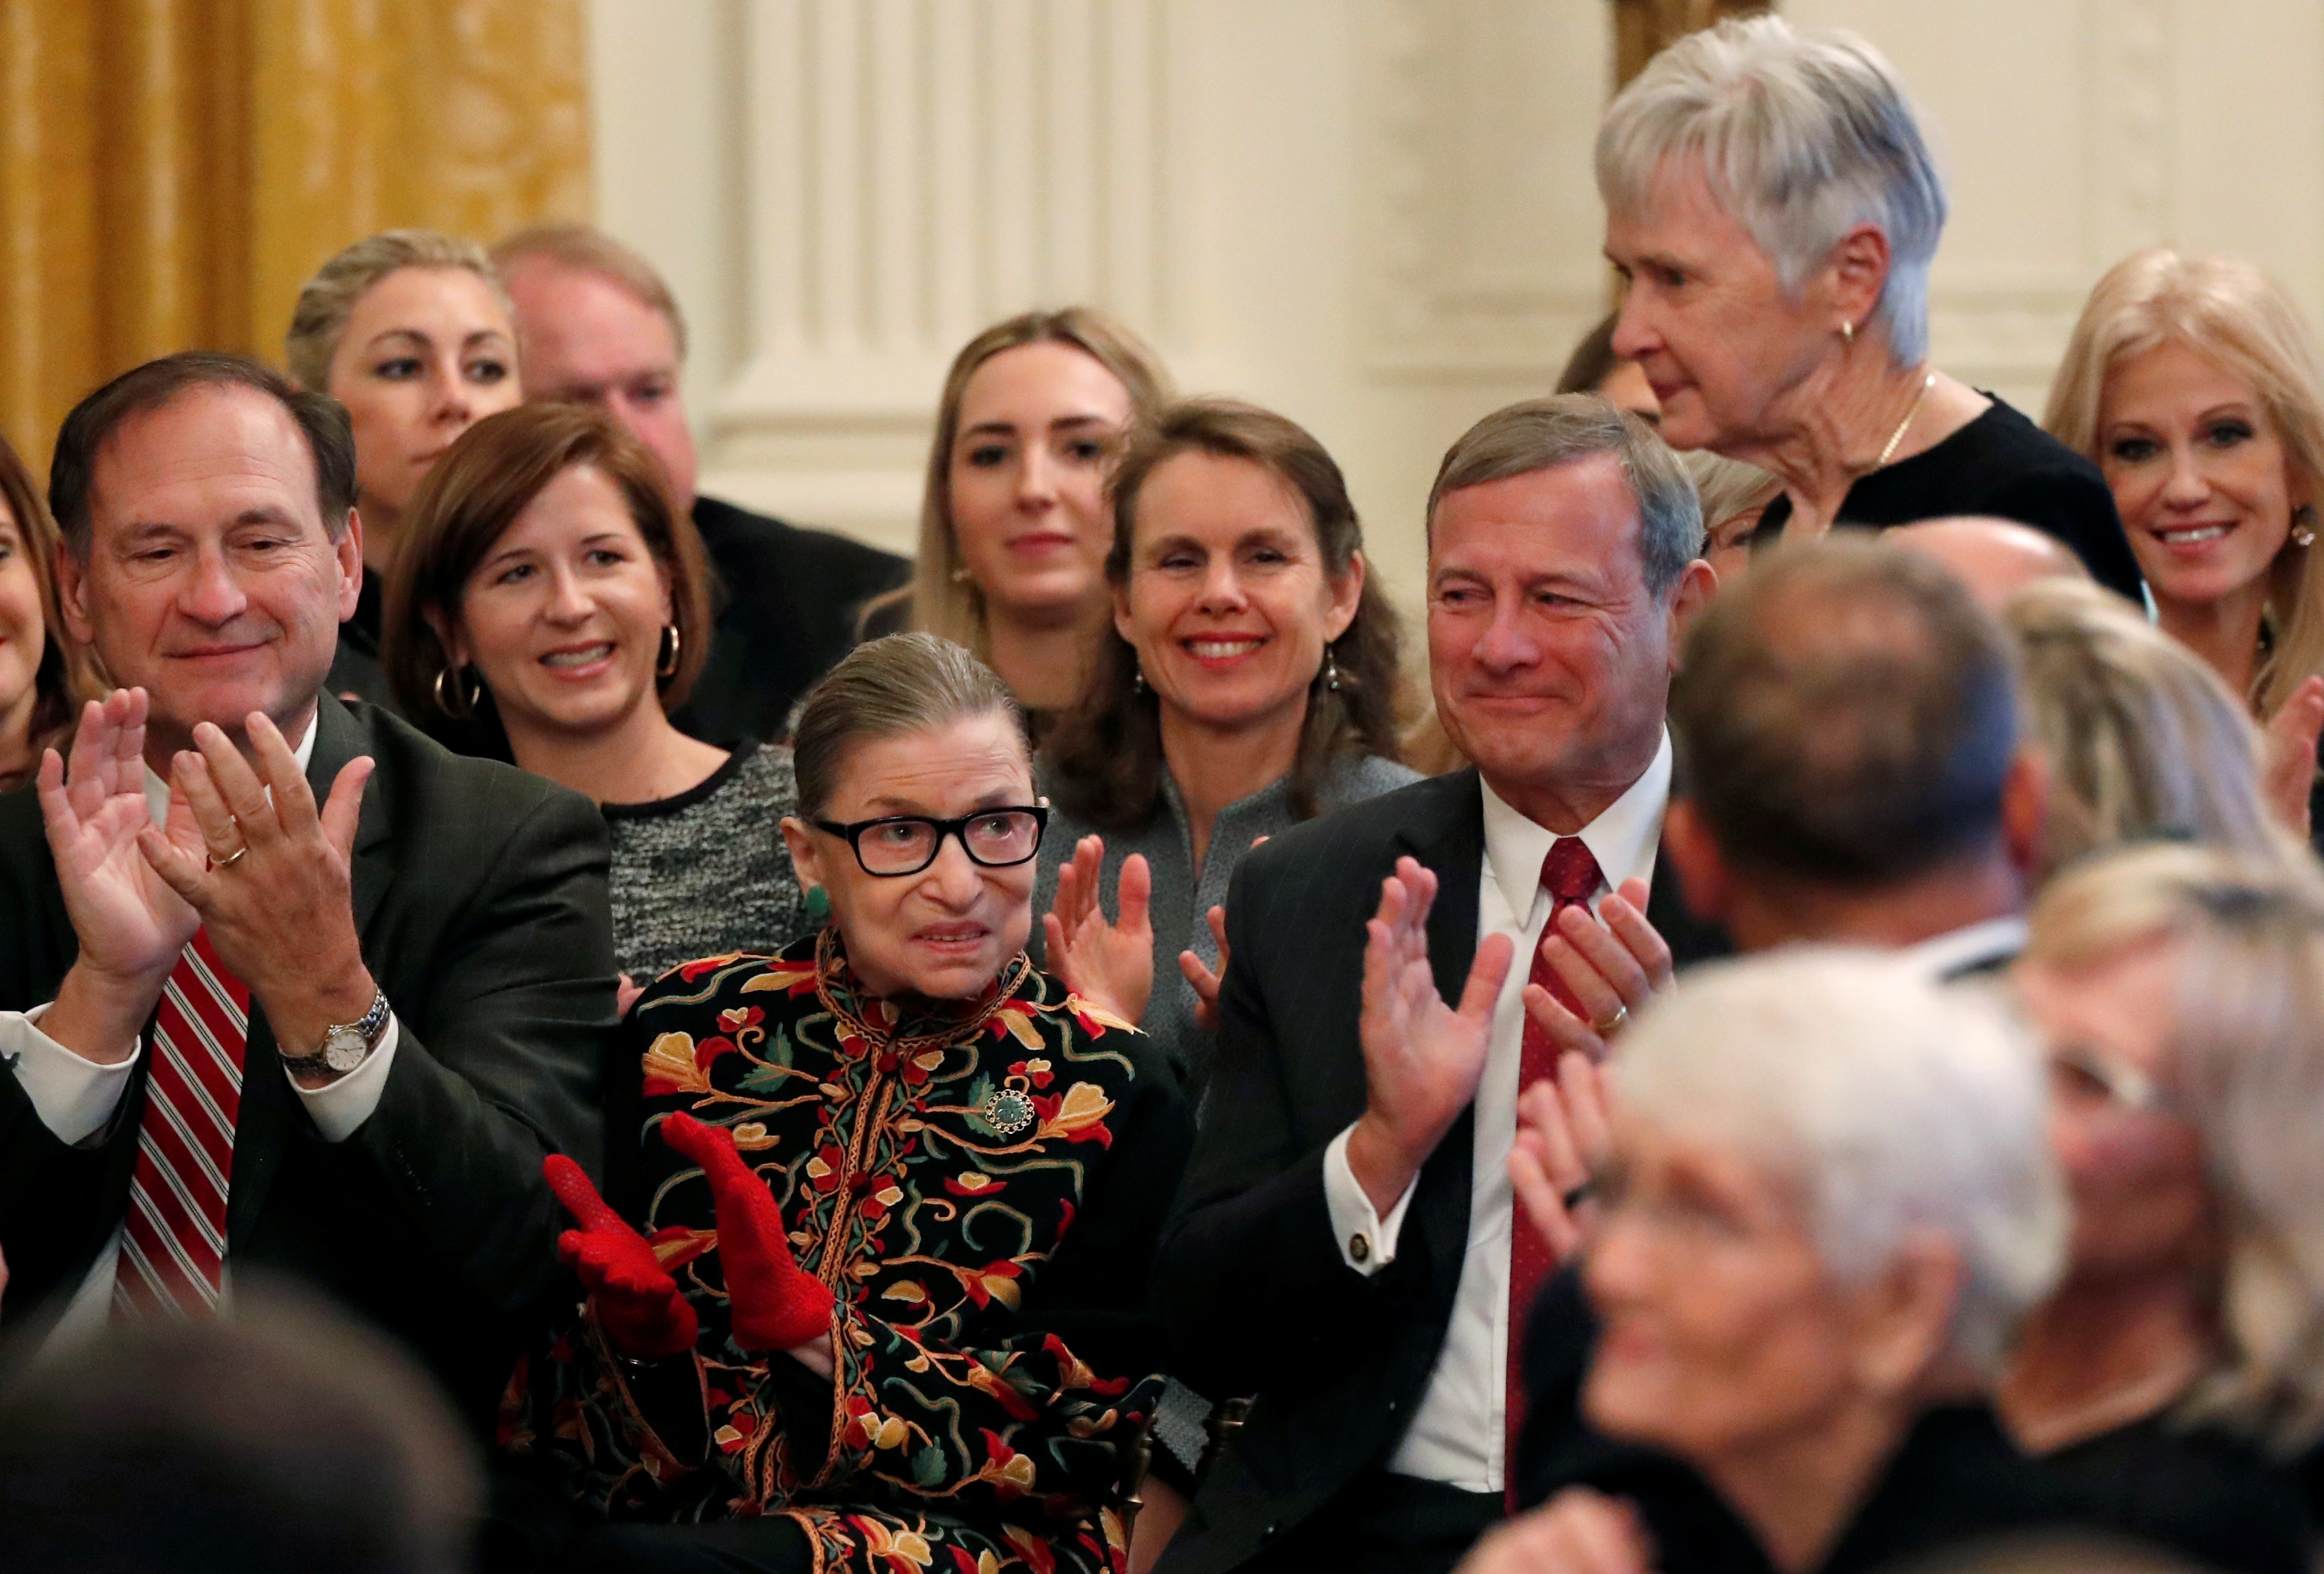 Justice Ruth Bader Ginsburg applauds as Maureen McCarthy Scalia, the wife of late Justice Antonin Scalia, walks to the stage during a ceremony where President Donald Trump awarded the 2018 Presidential Medal of Freedom to Scalia in the White House. REUTERS/Leah Millis